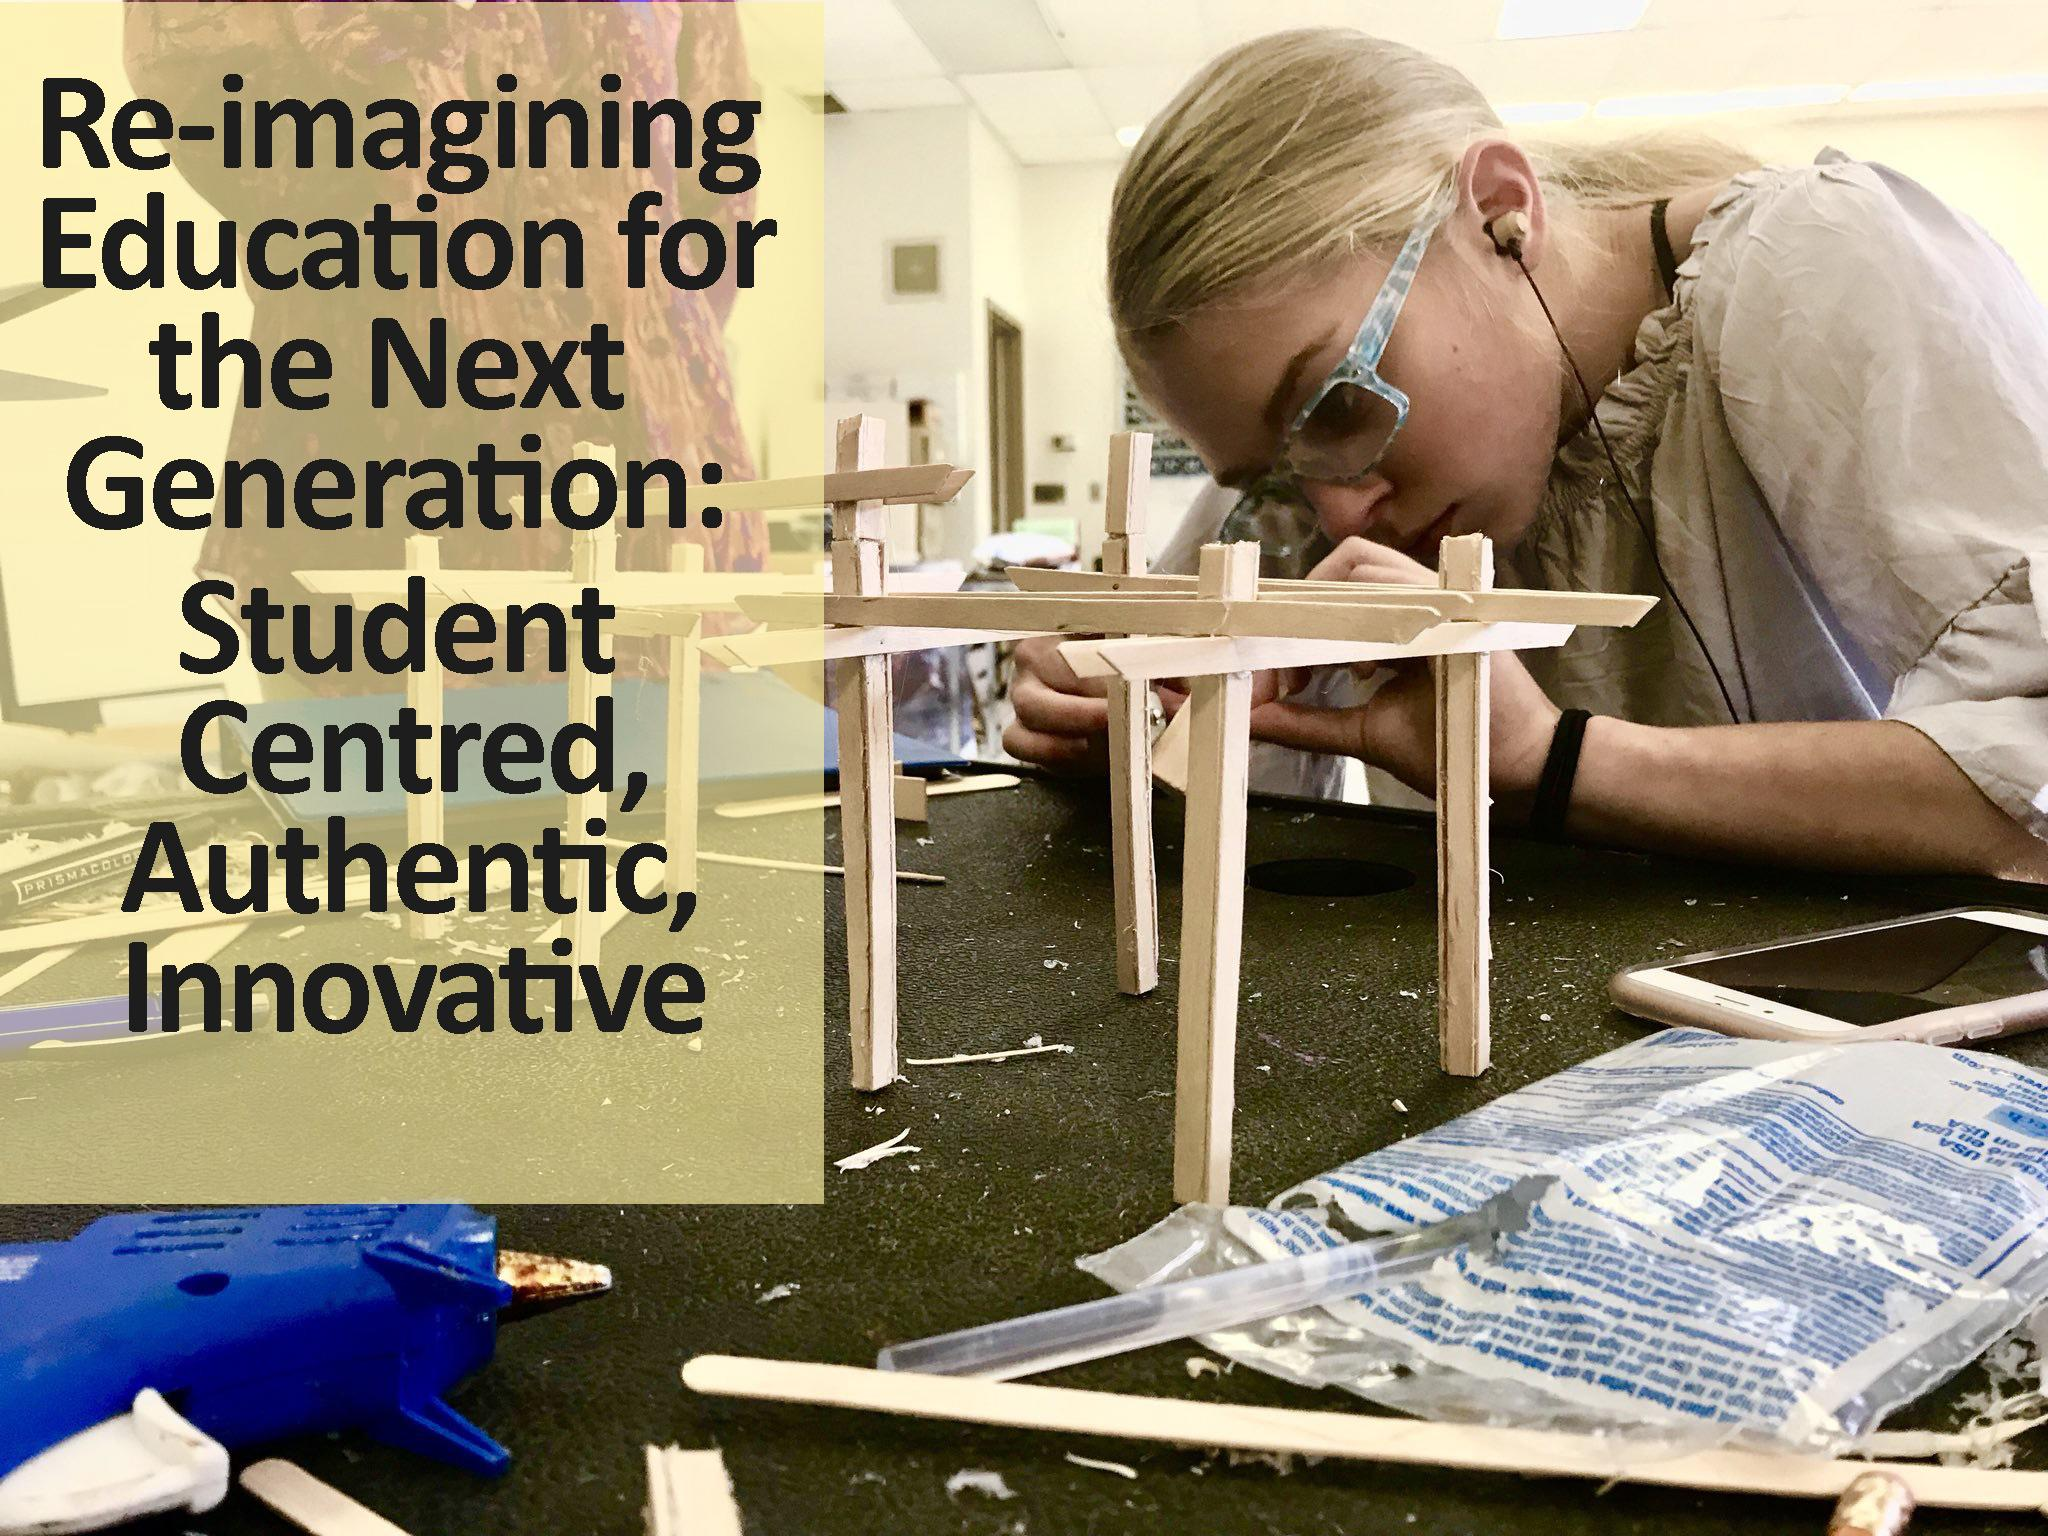 Re-imagining Education for the Next Generation